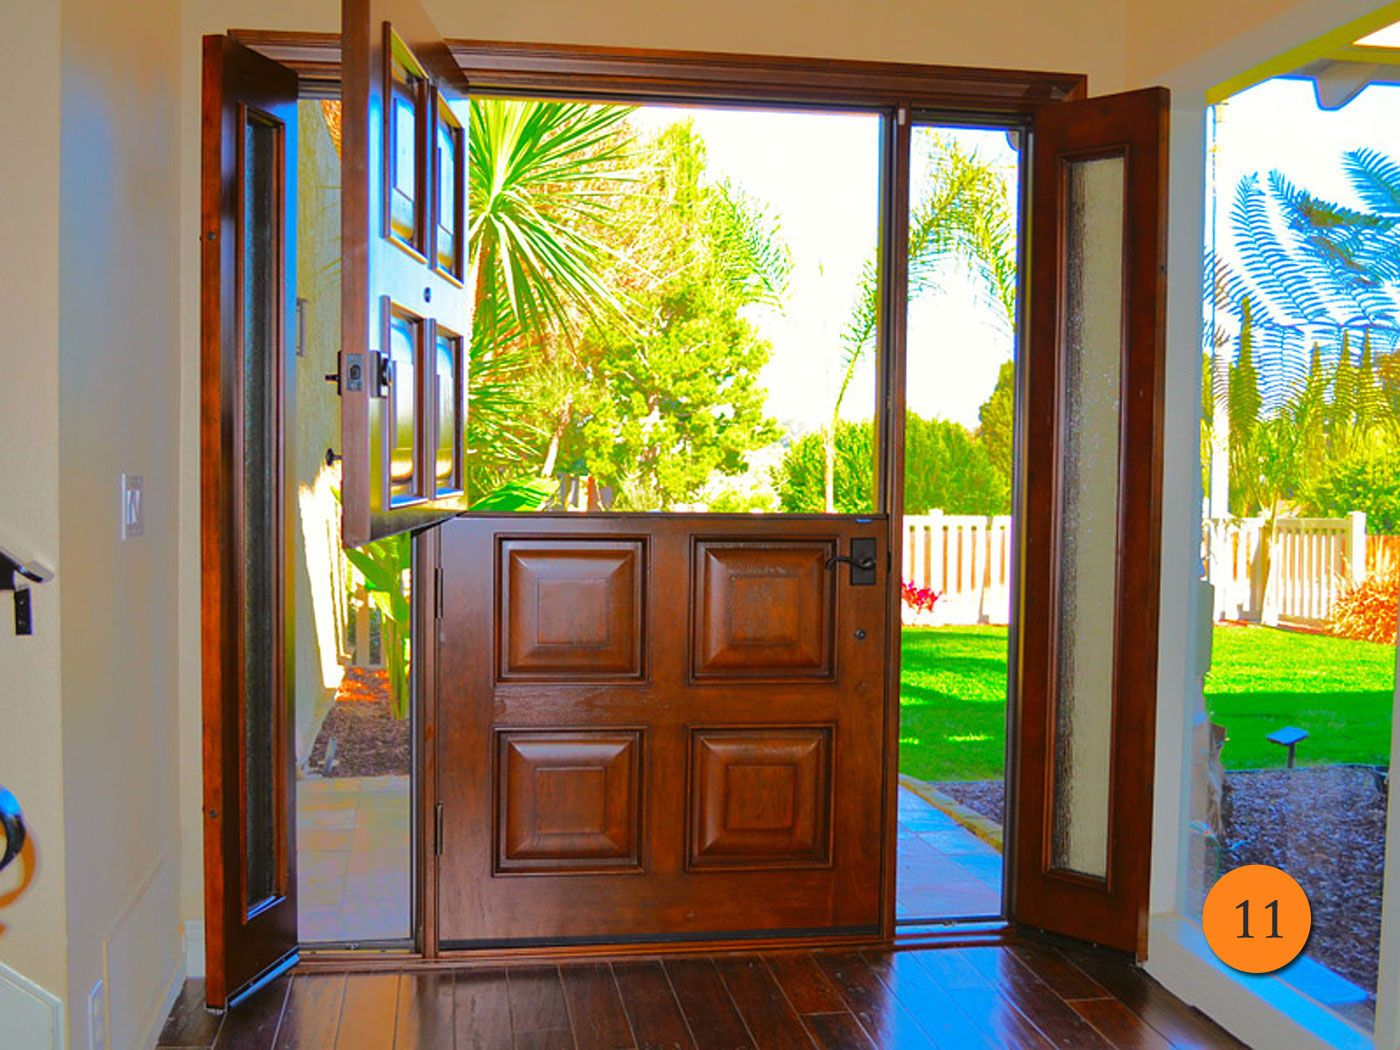 42 X80 Inch Wide Single Dutch Entry Door